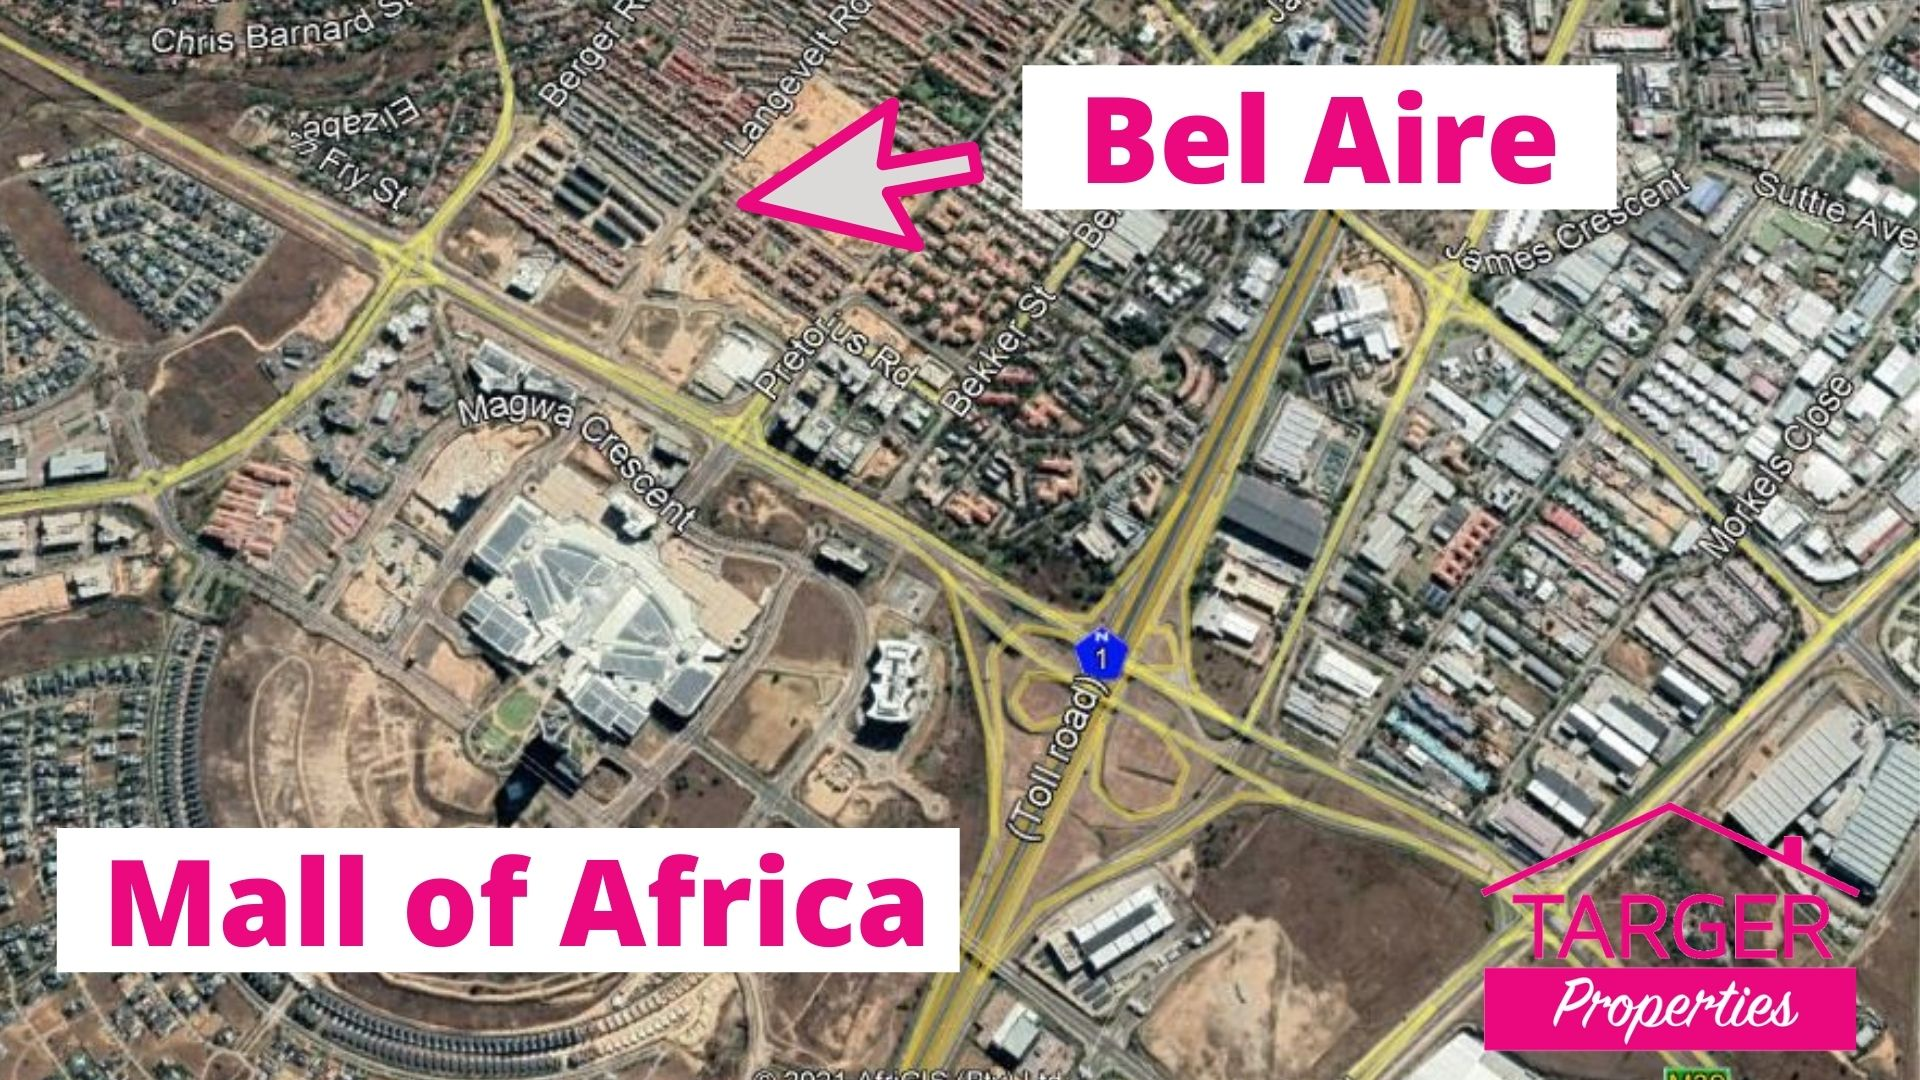 bel aire for sale